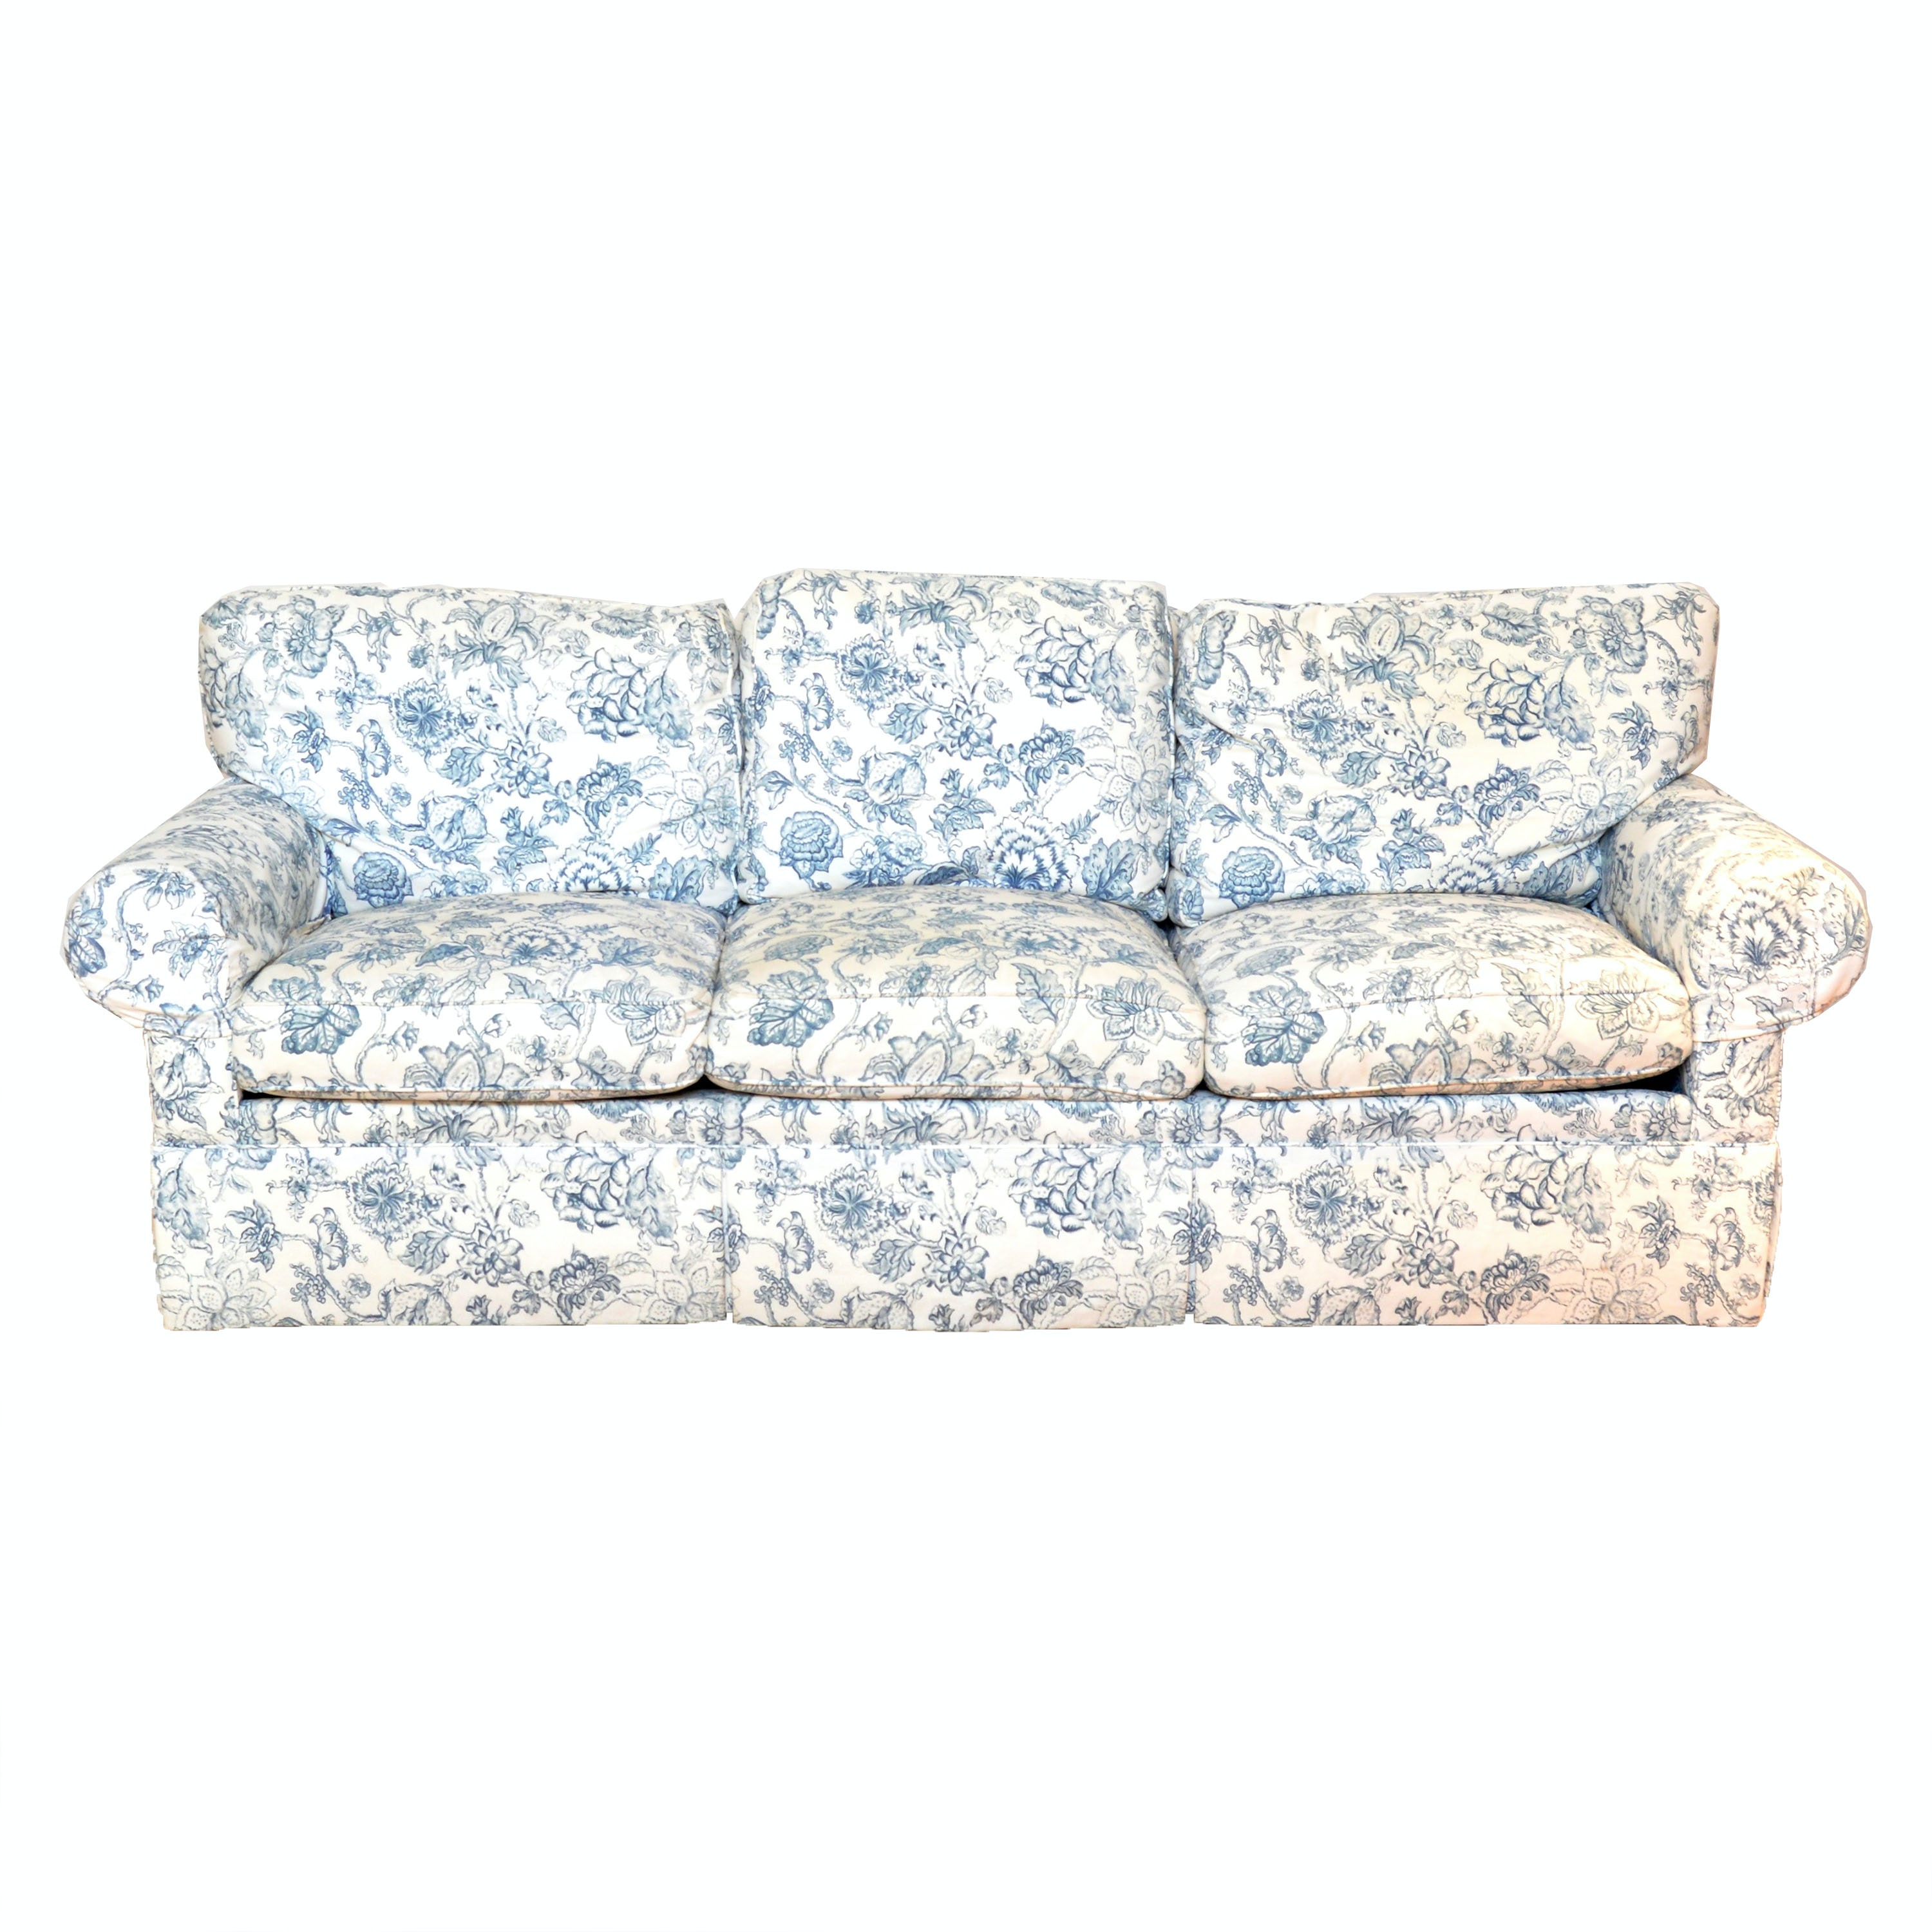 Plush Floral Sofa By Southwood Furniture ...